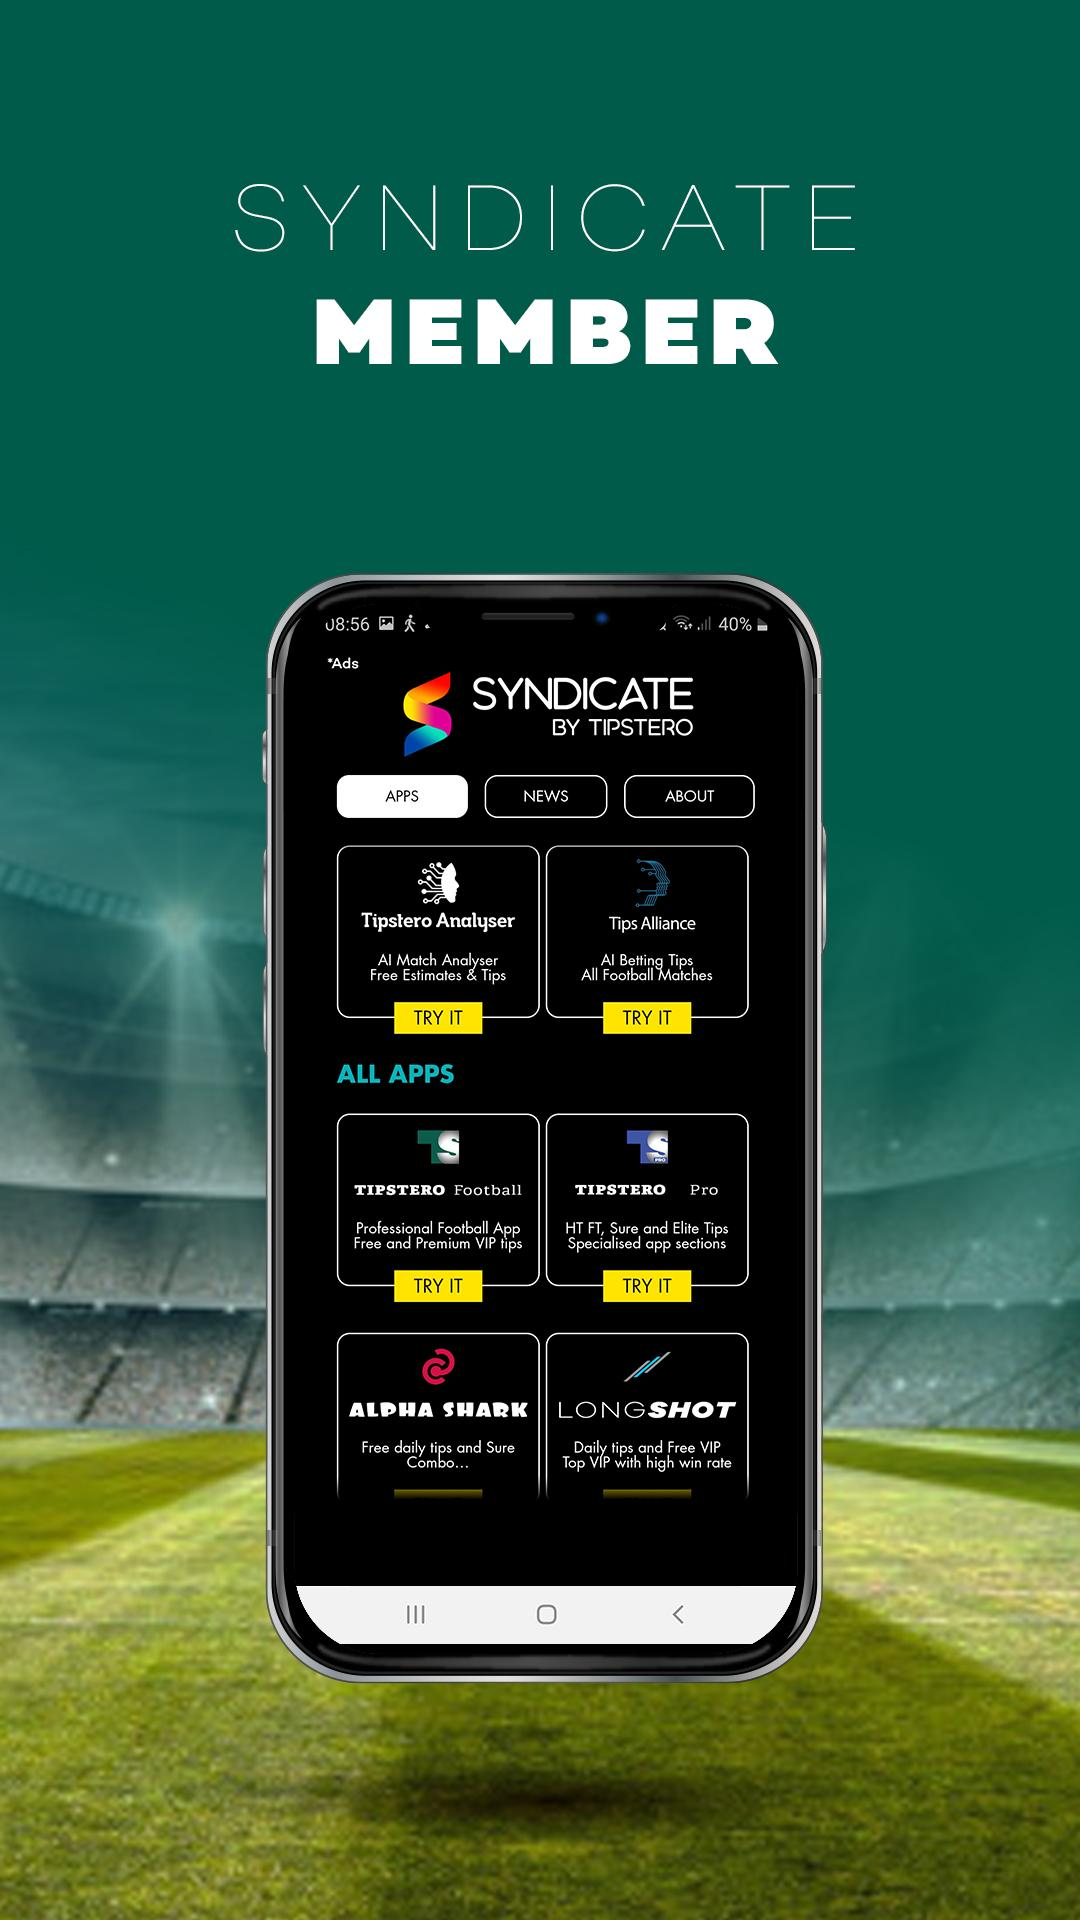 Football betting tips apps cryptocurrency 2021 nfl